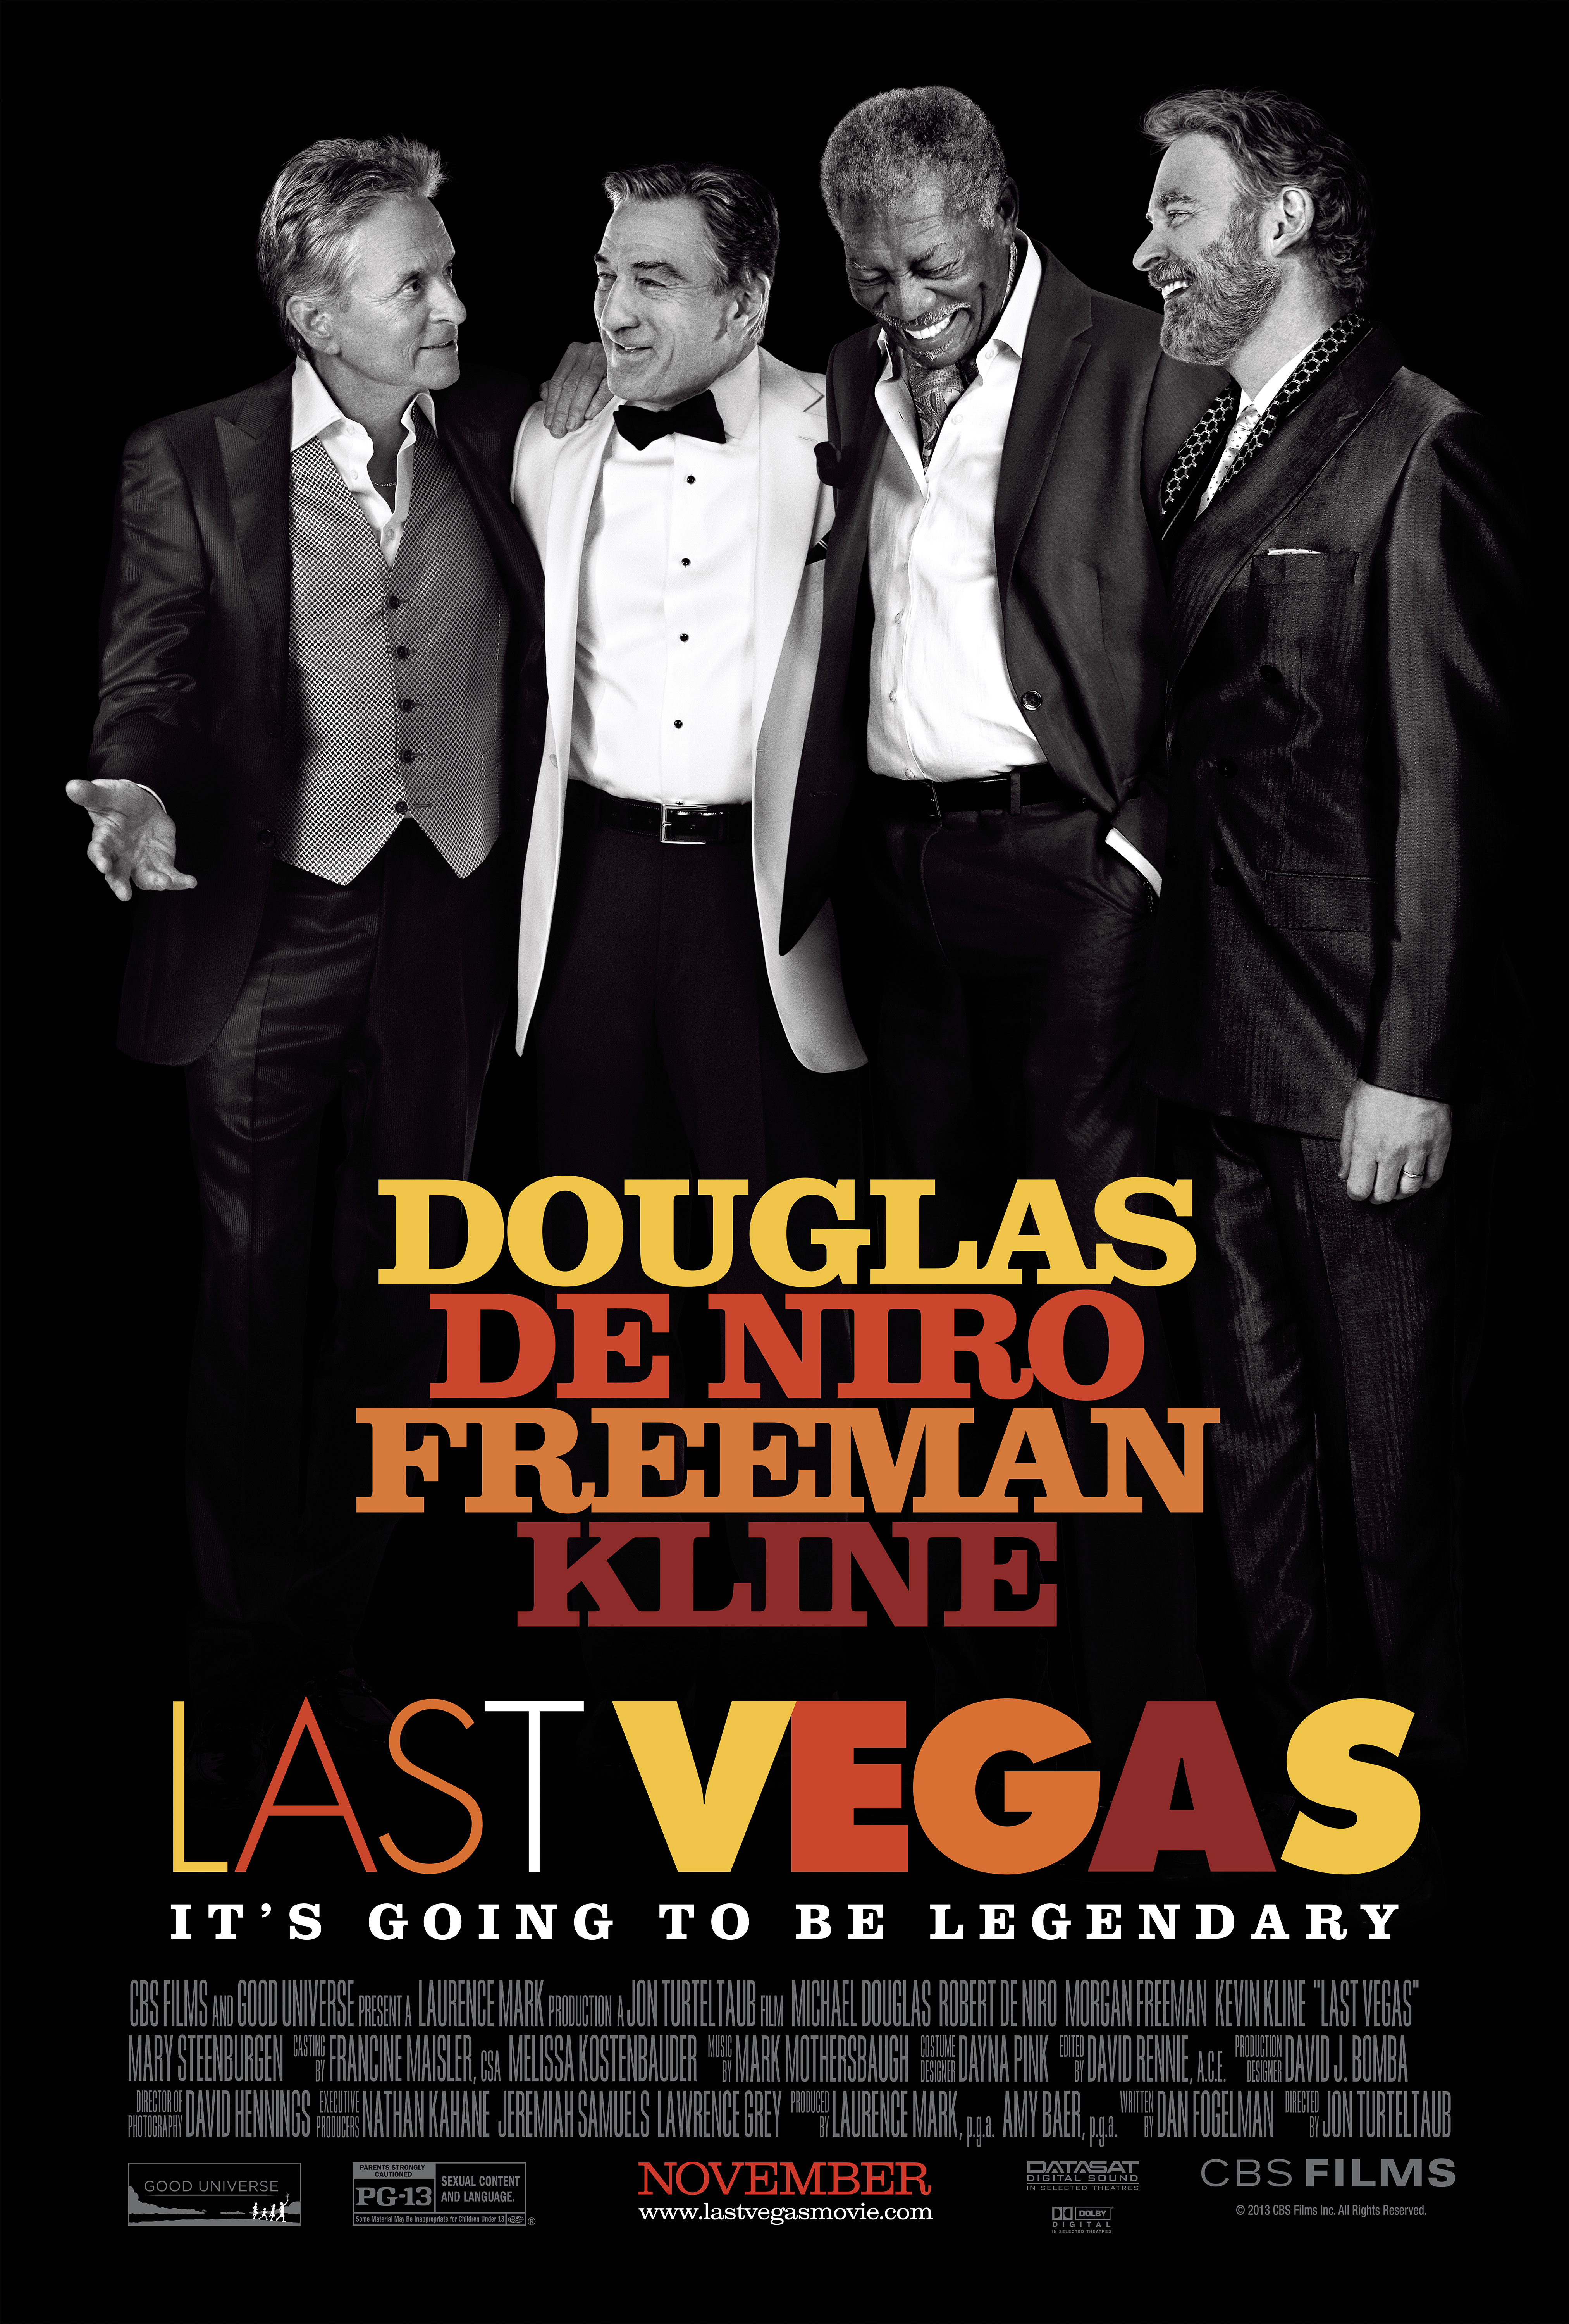 248158id1f lastvegas 1sht Four Acting Legends Live in Sin in New Last Vegas Official Poster